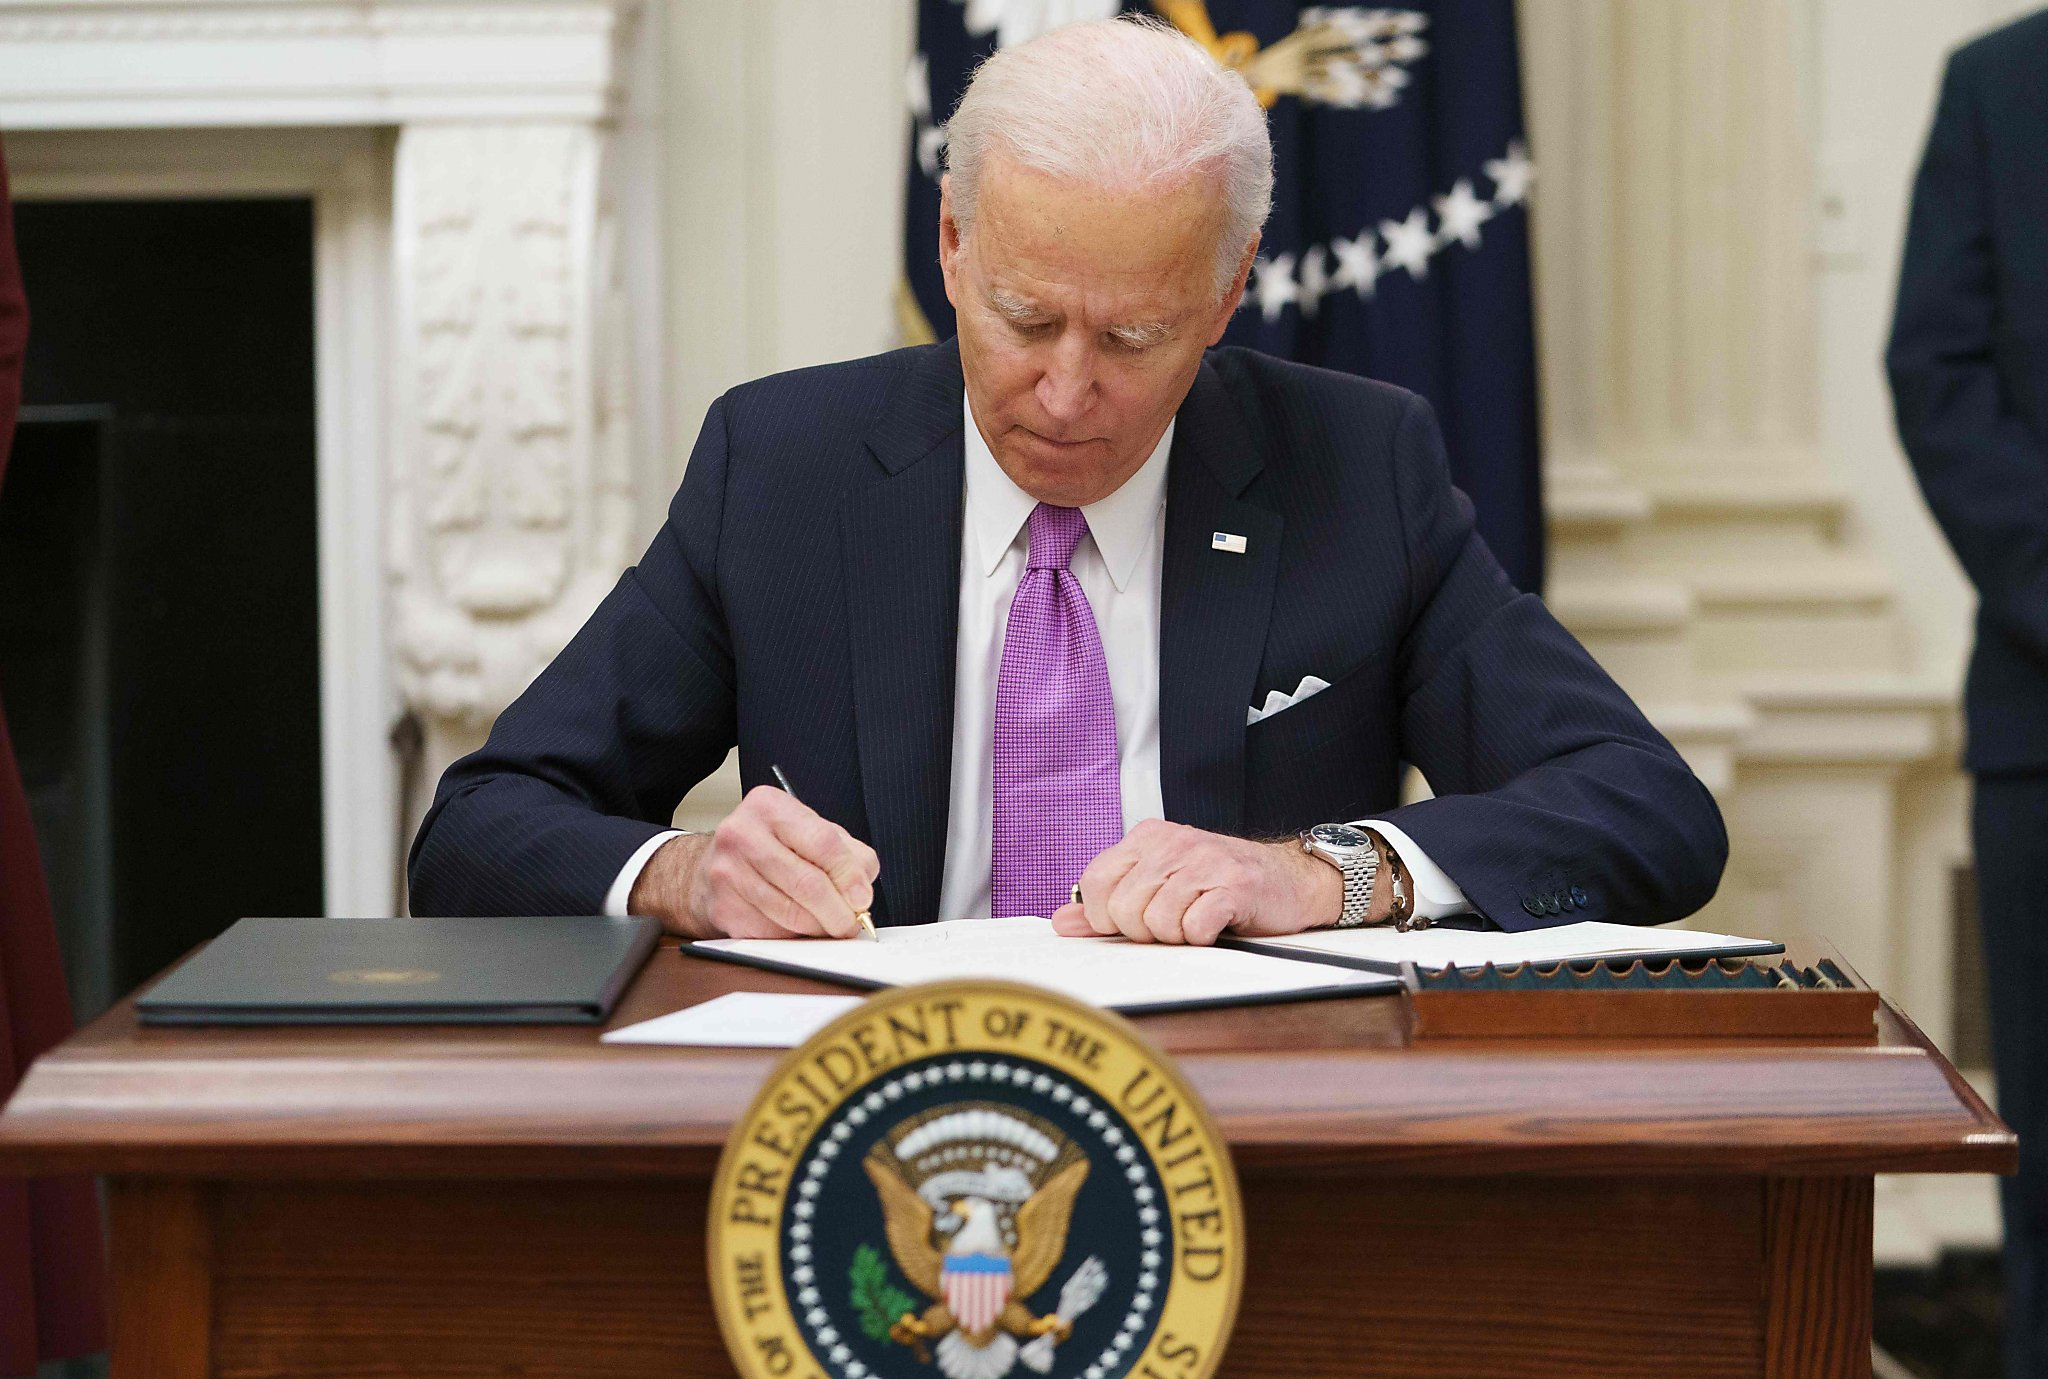 How Biden's new COVID executive orders compare to what California is already doing